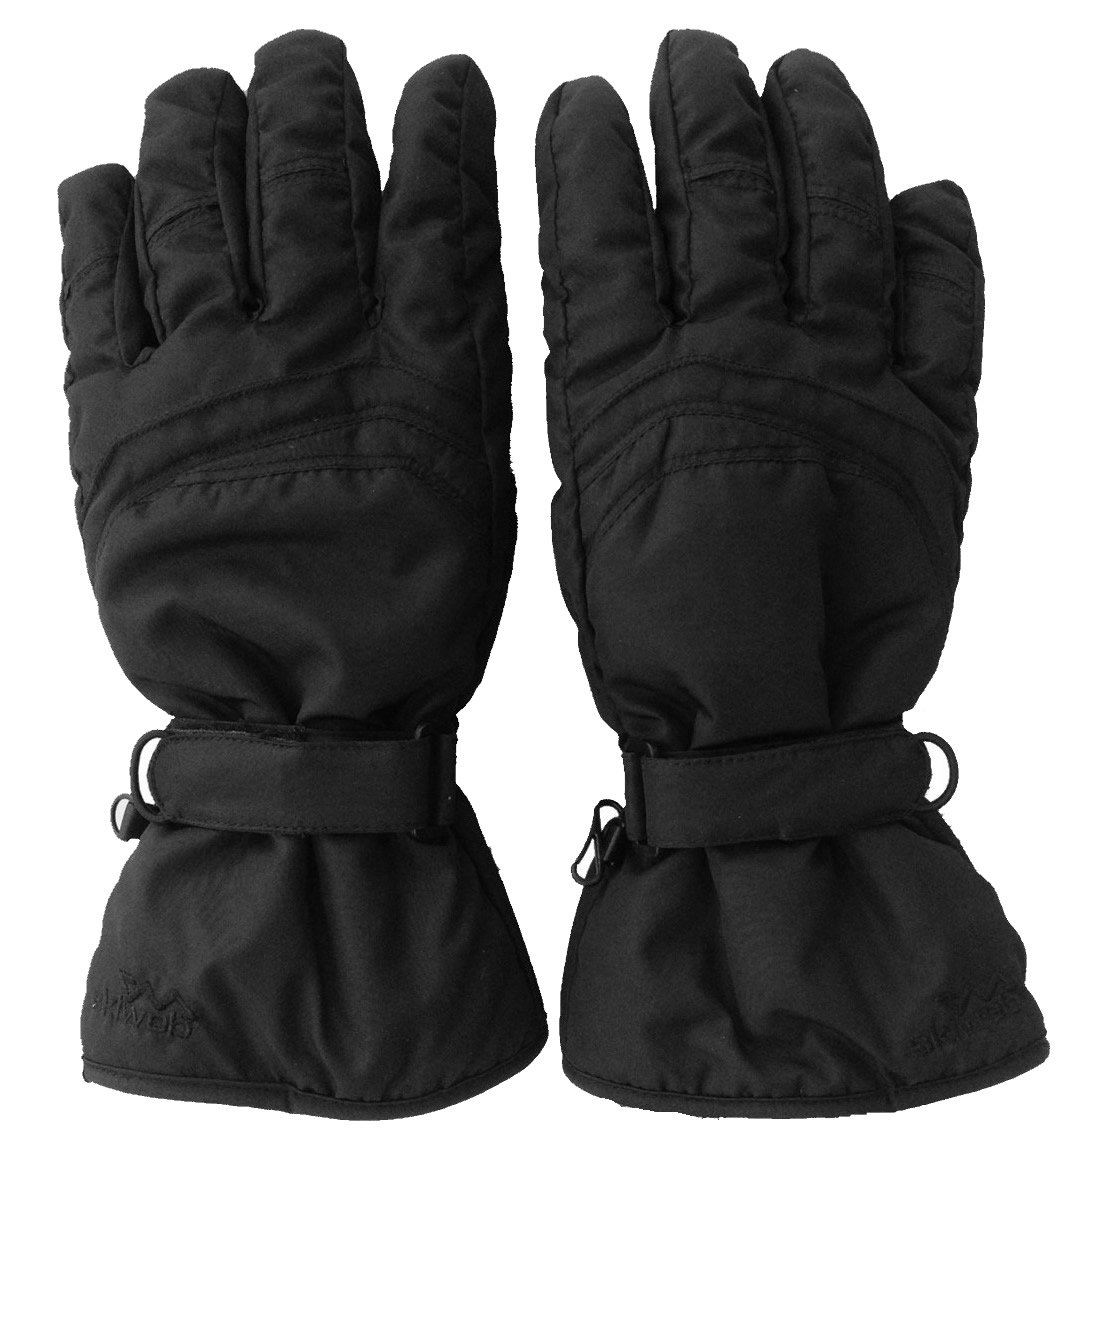 Womens Black Ski Gloves - Water Resistant & PU Palm For Grip - Sizes XS - Large Skiweb